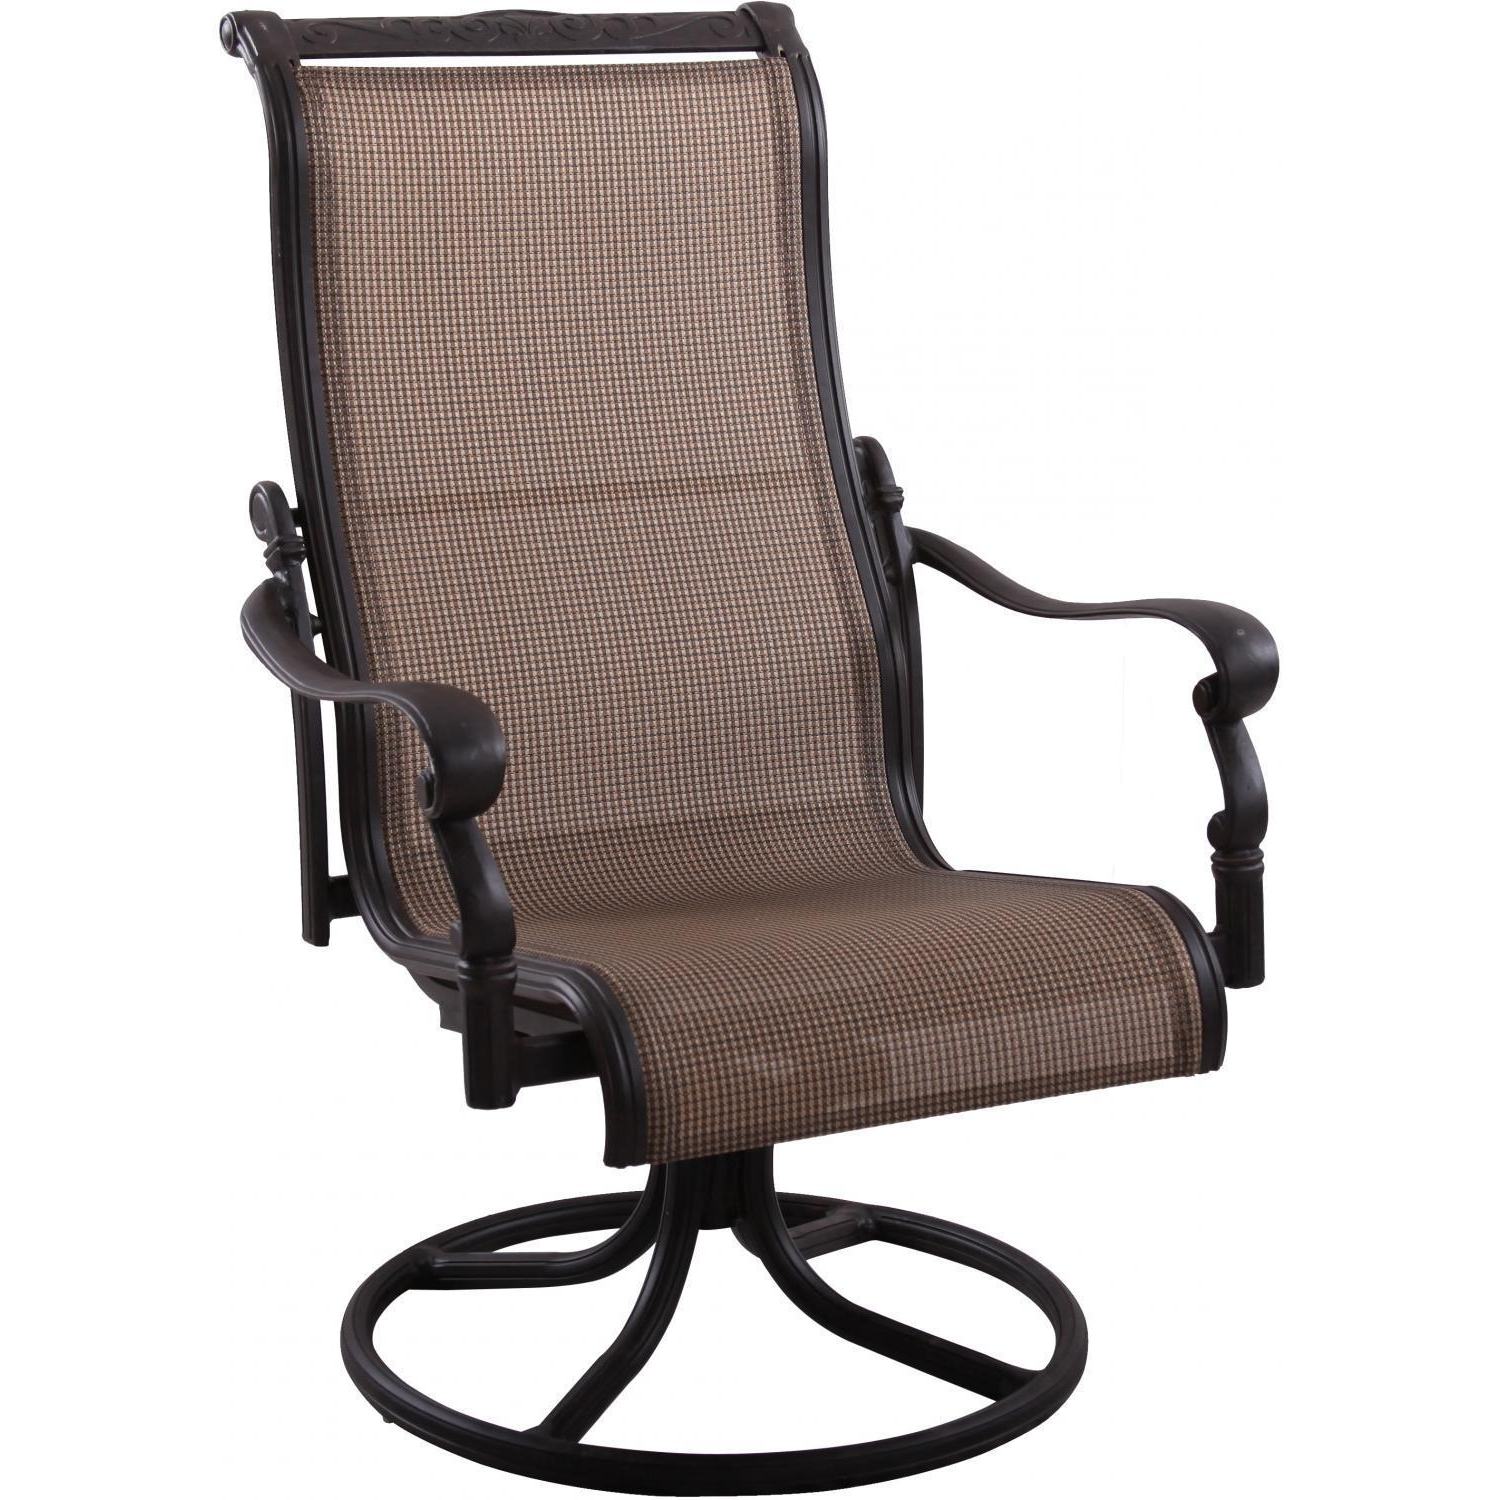 Patio Sling Rocking Chairs Throughout 2019 Darlee Monterey Sling Patio Swivel Rocker Dining Chair Tommy Bahama (View 13 of 20)